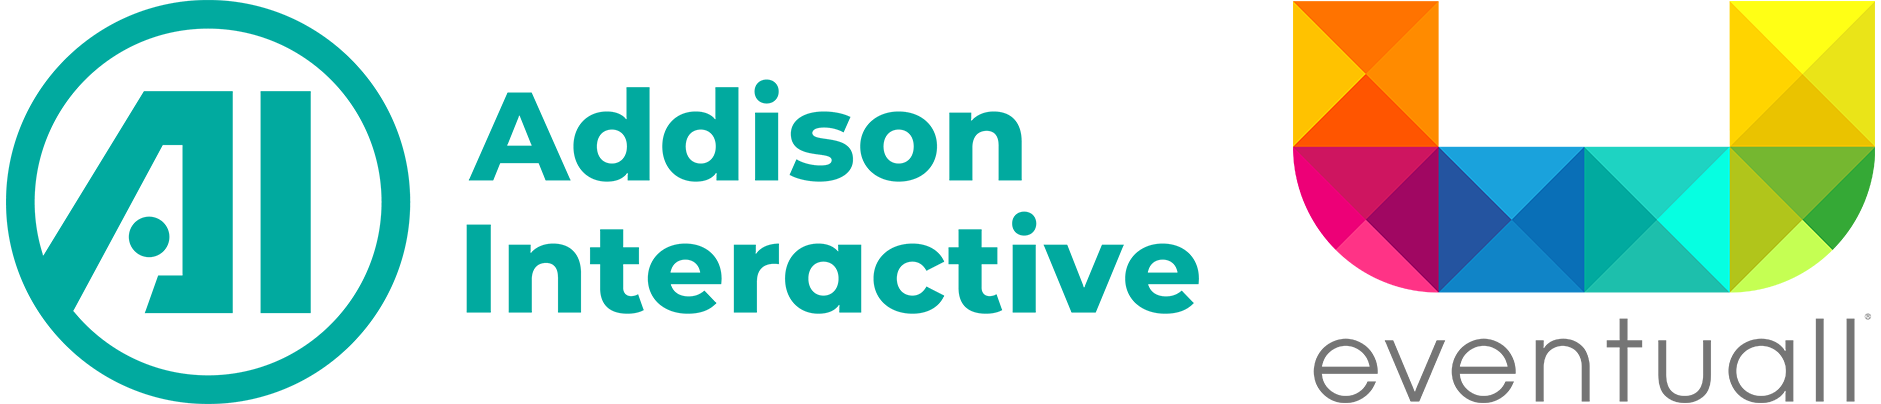 Addison Interactive + Eventuall Logo